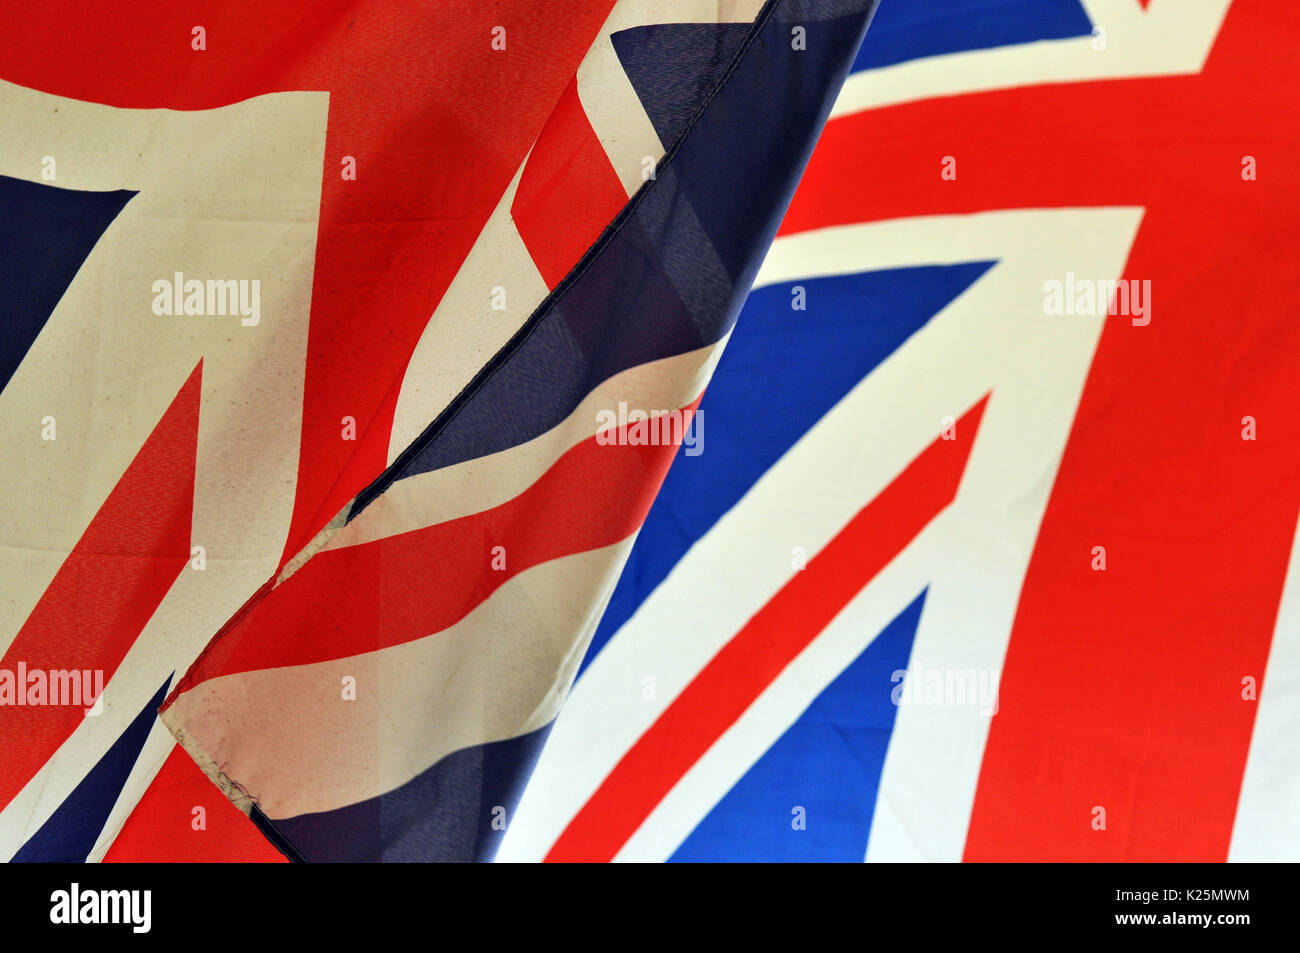 union flags and jacks banners and patriotic national symbols and emblems - Stock Image